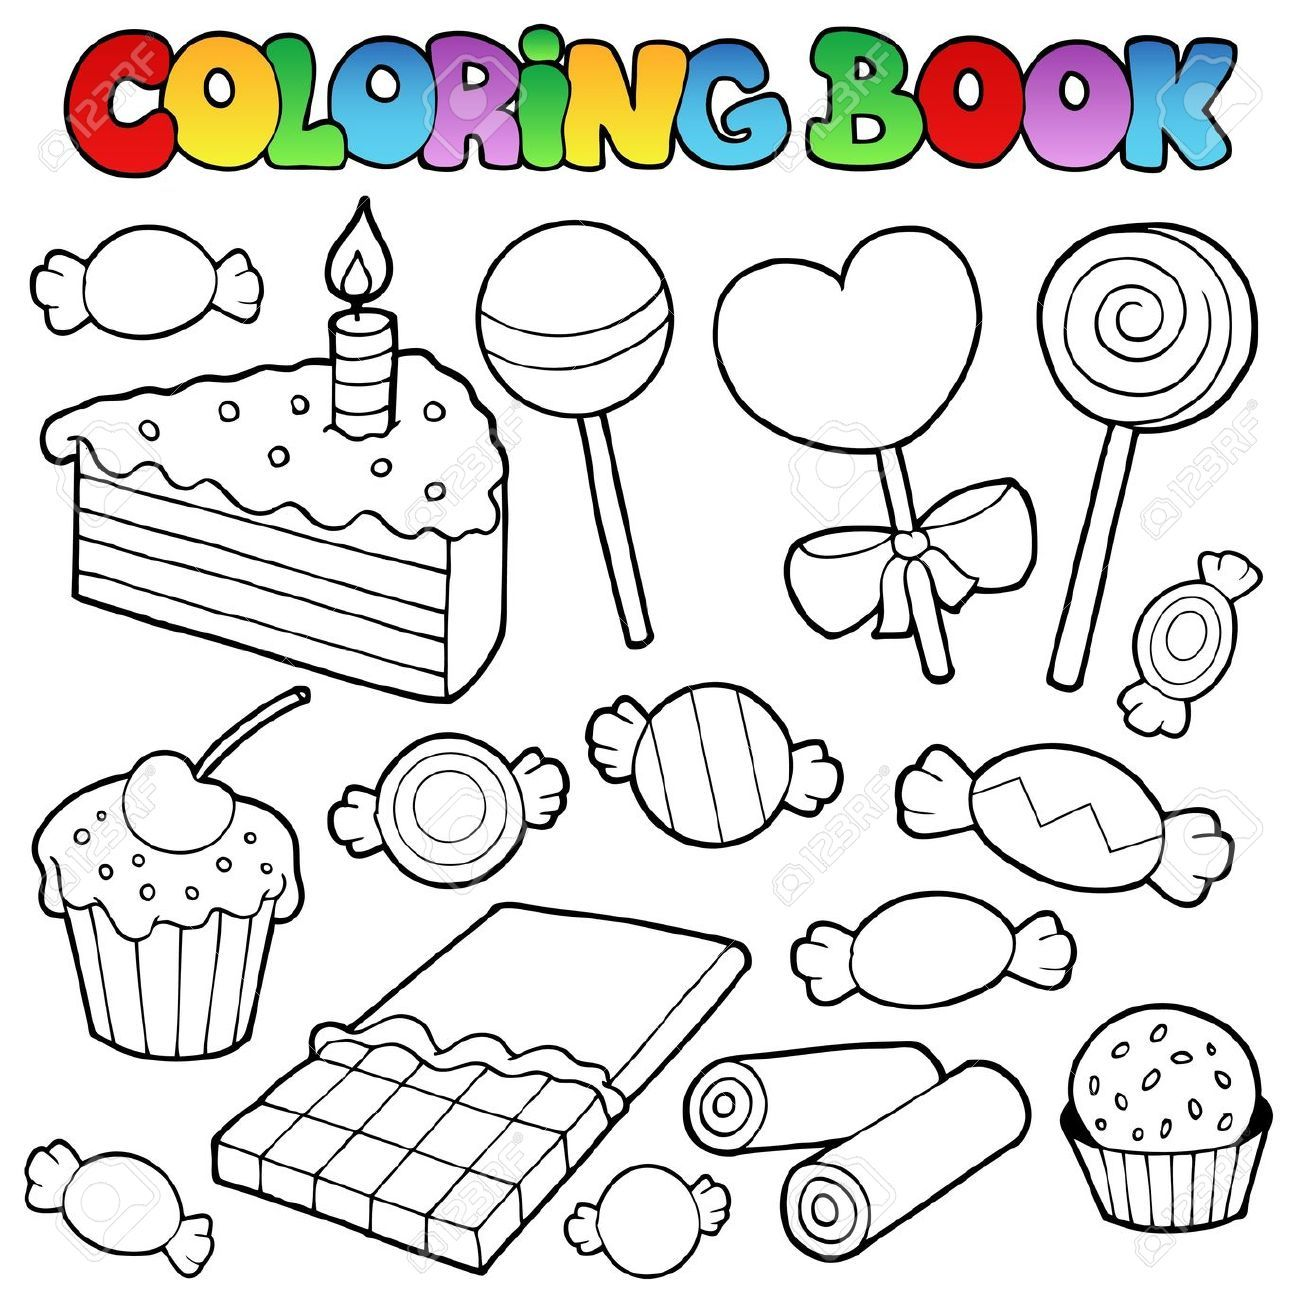 Drawing Coloring Book | Coloring Pages